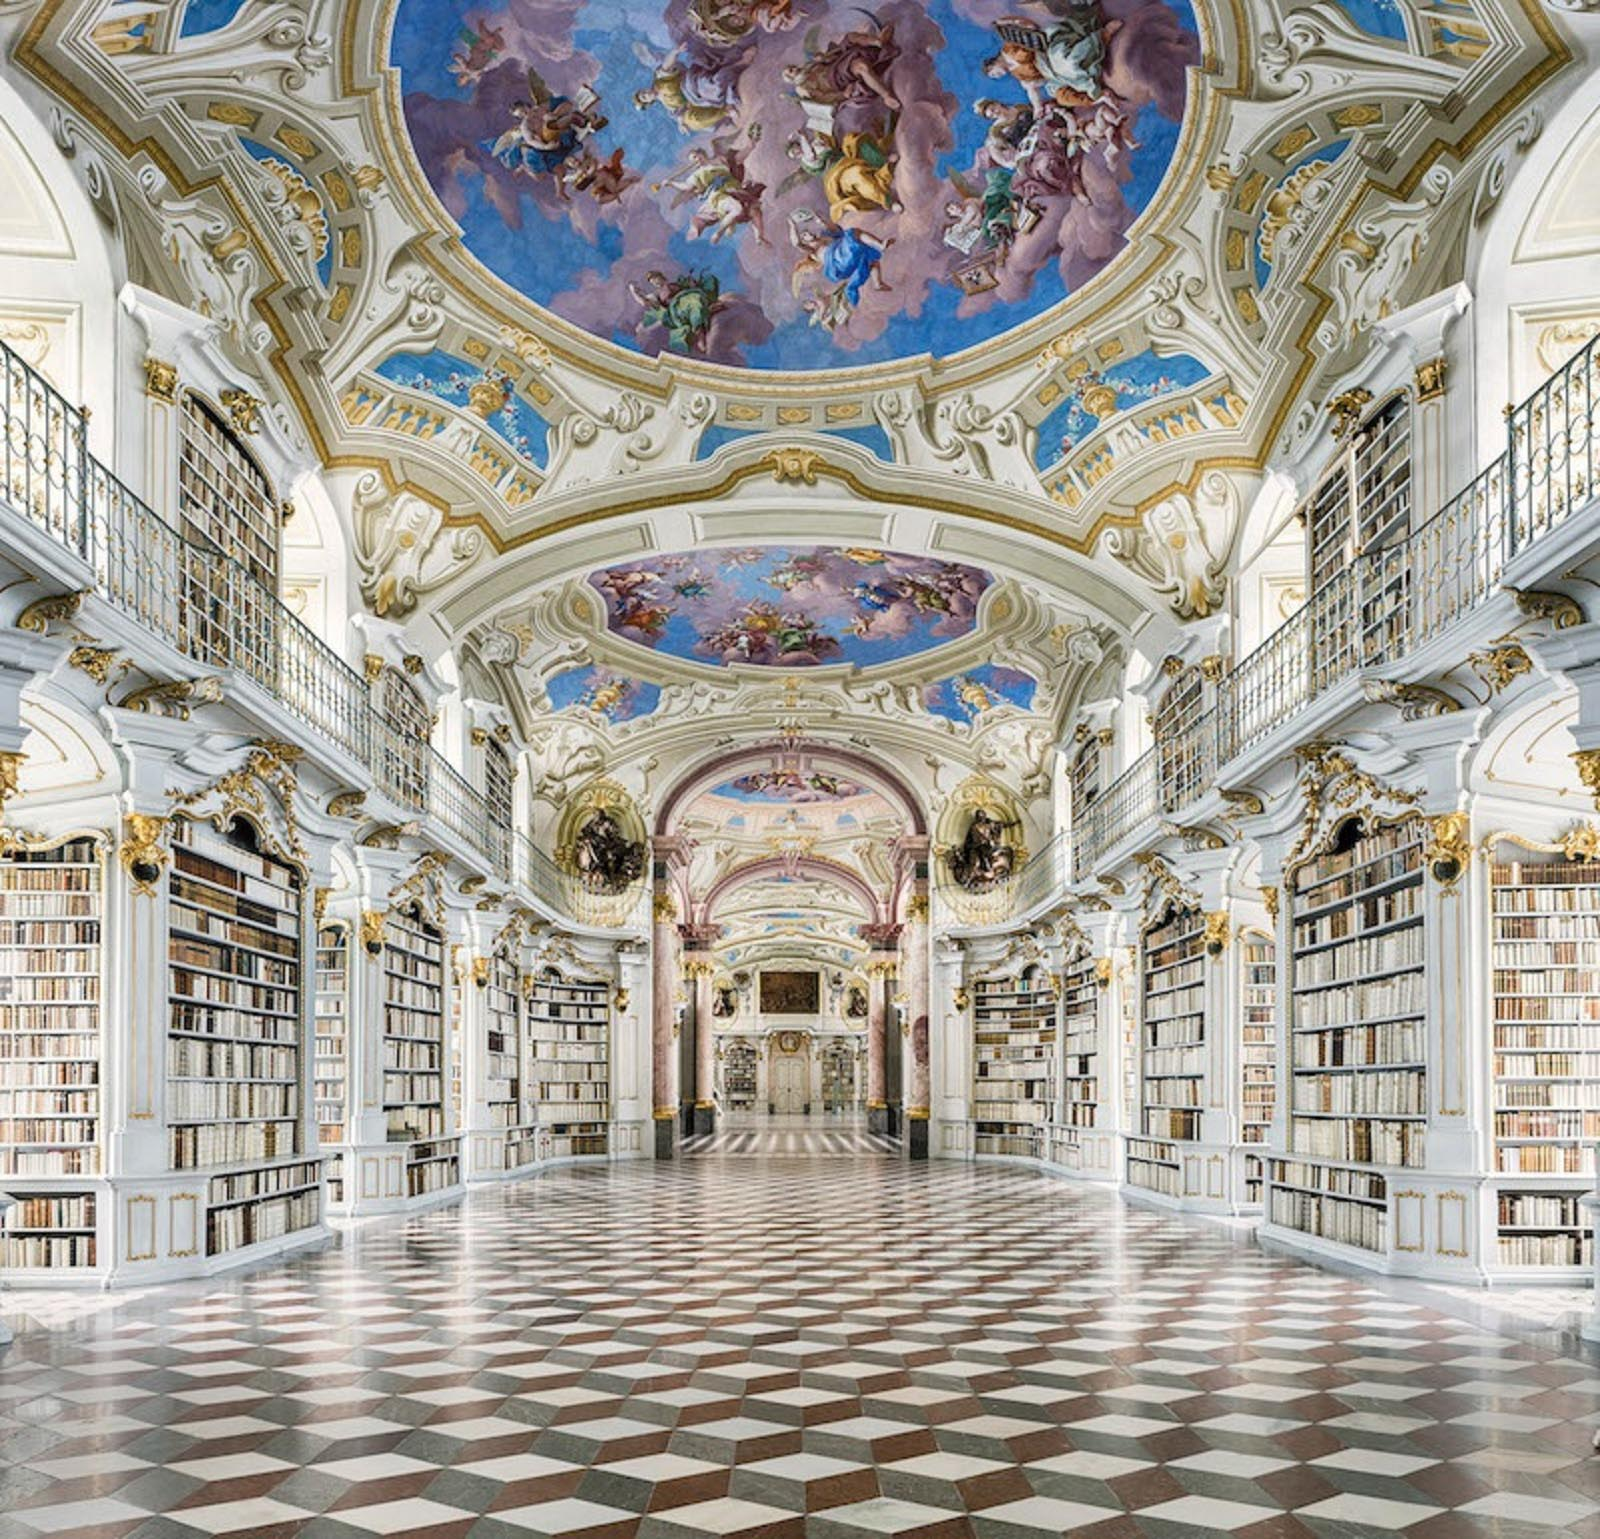 Admont Abbey Library. Photo Source: Enviedart.